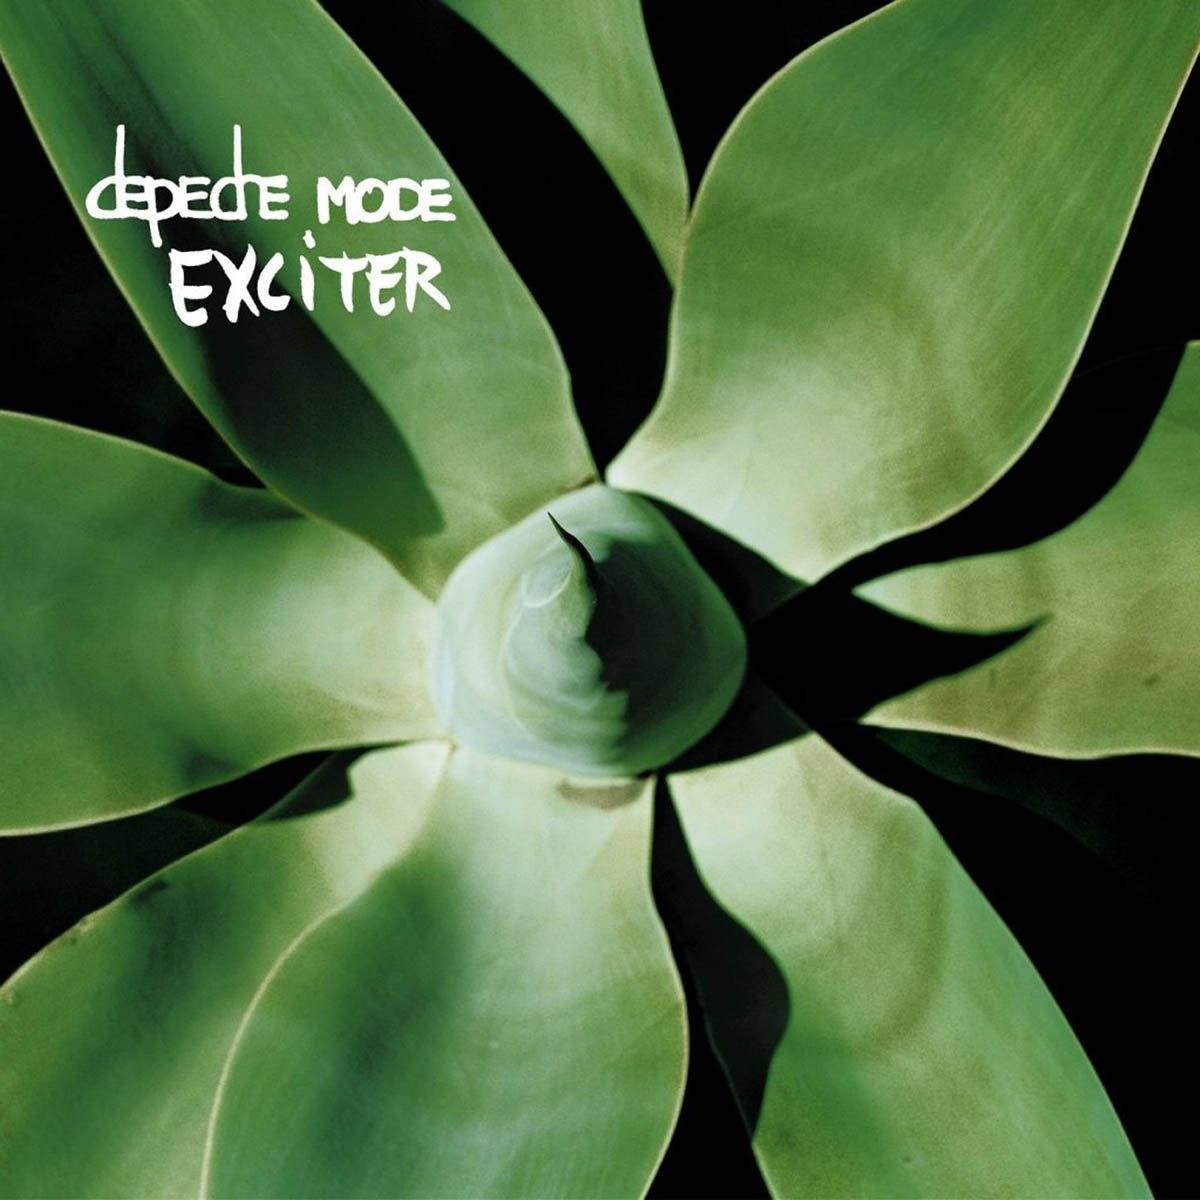 Depeche Mode, Exciter